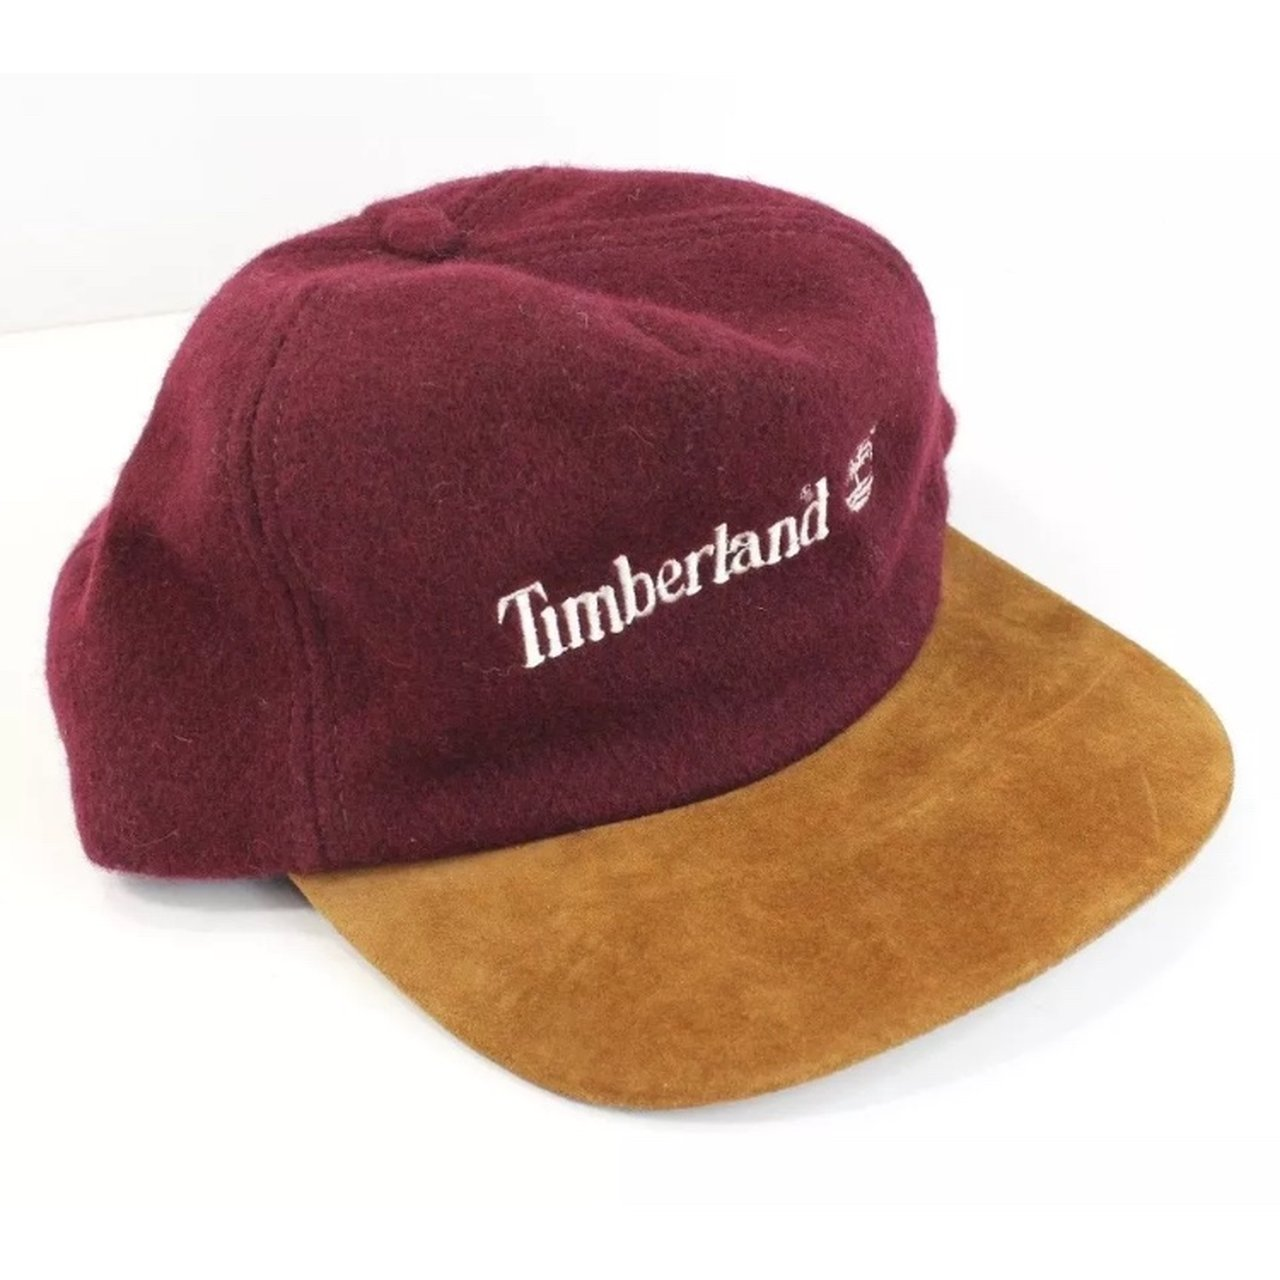 3a224969a08 Vintage Timberland Wool Suede Leather Strapback Hat Mint - - Depop